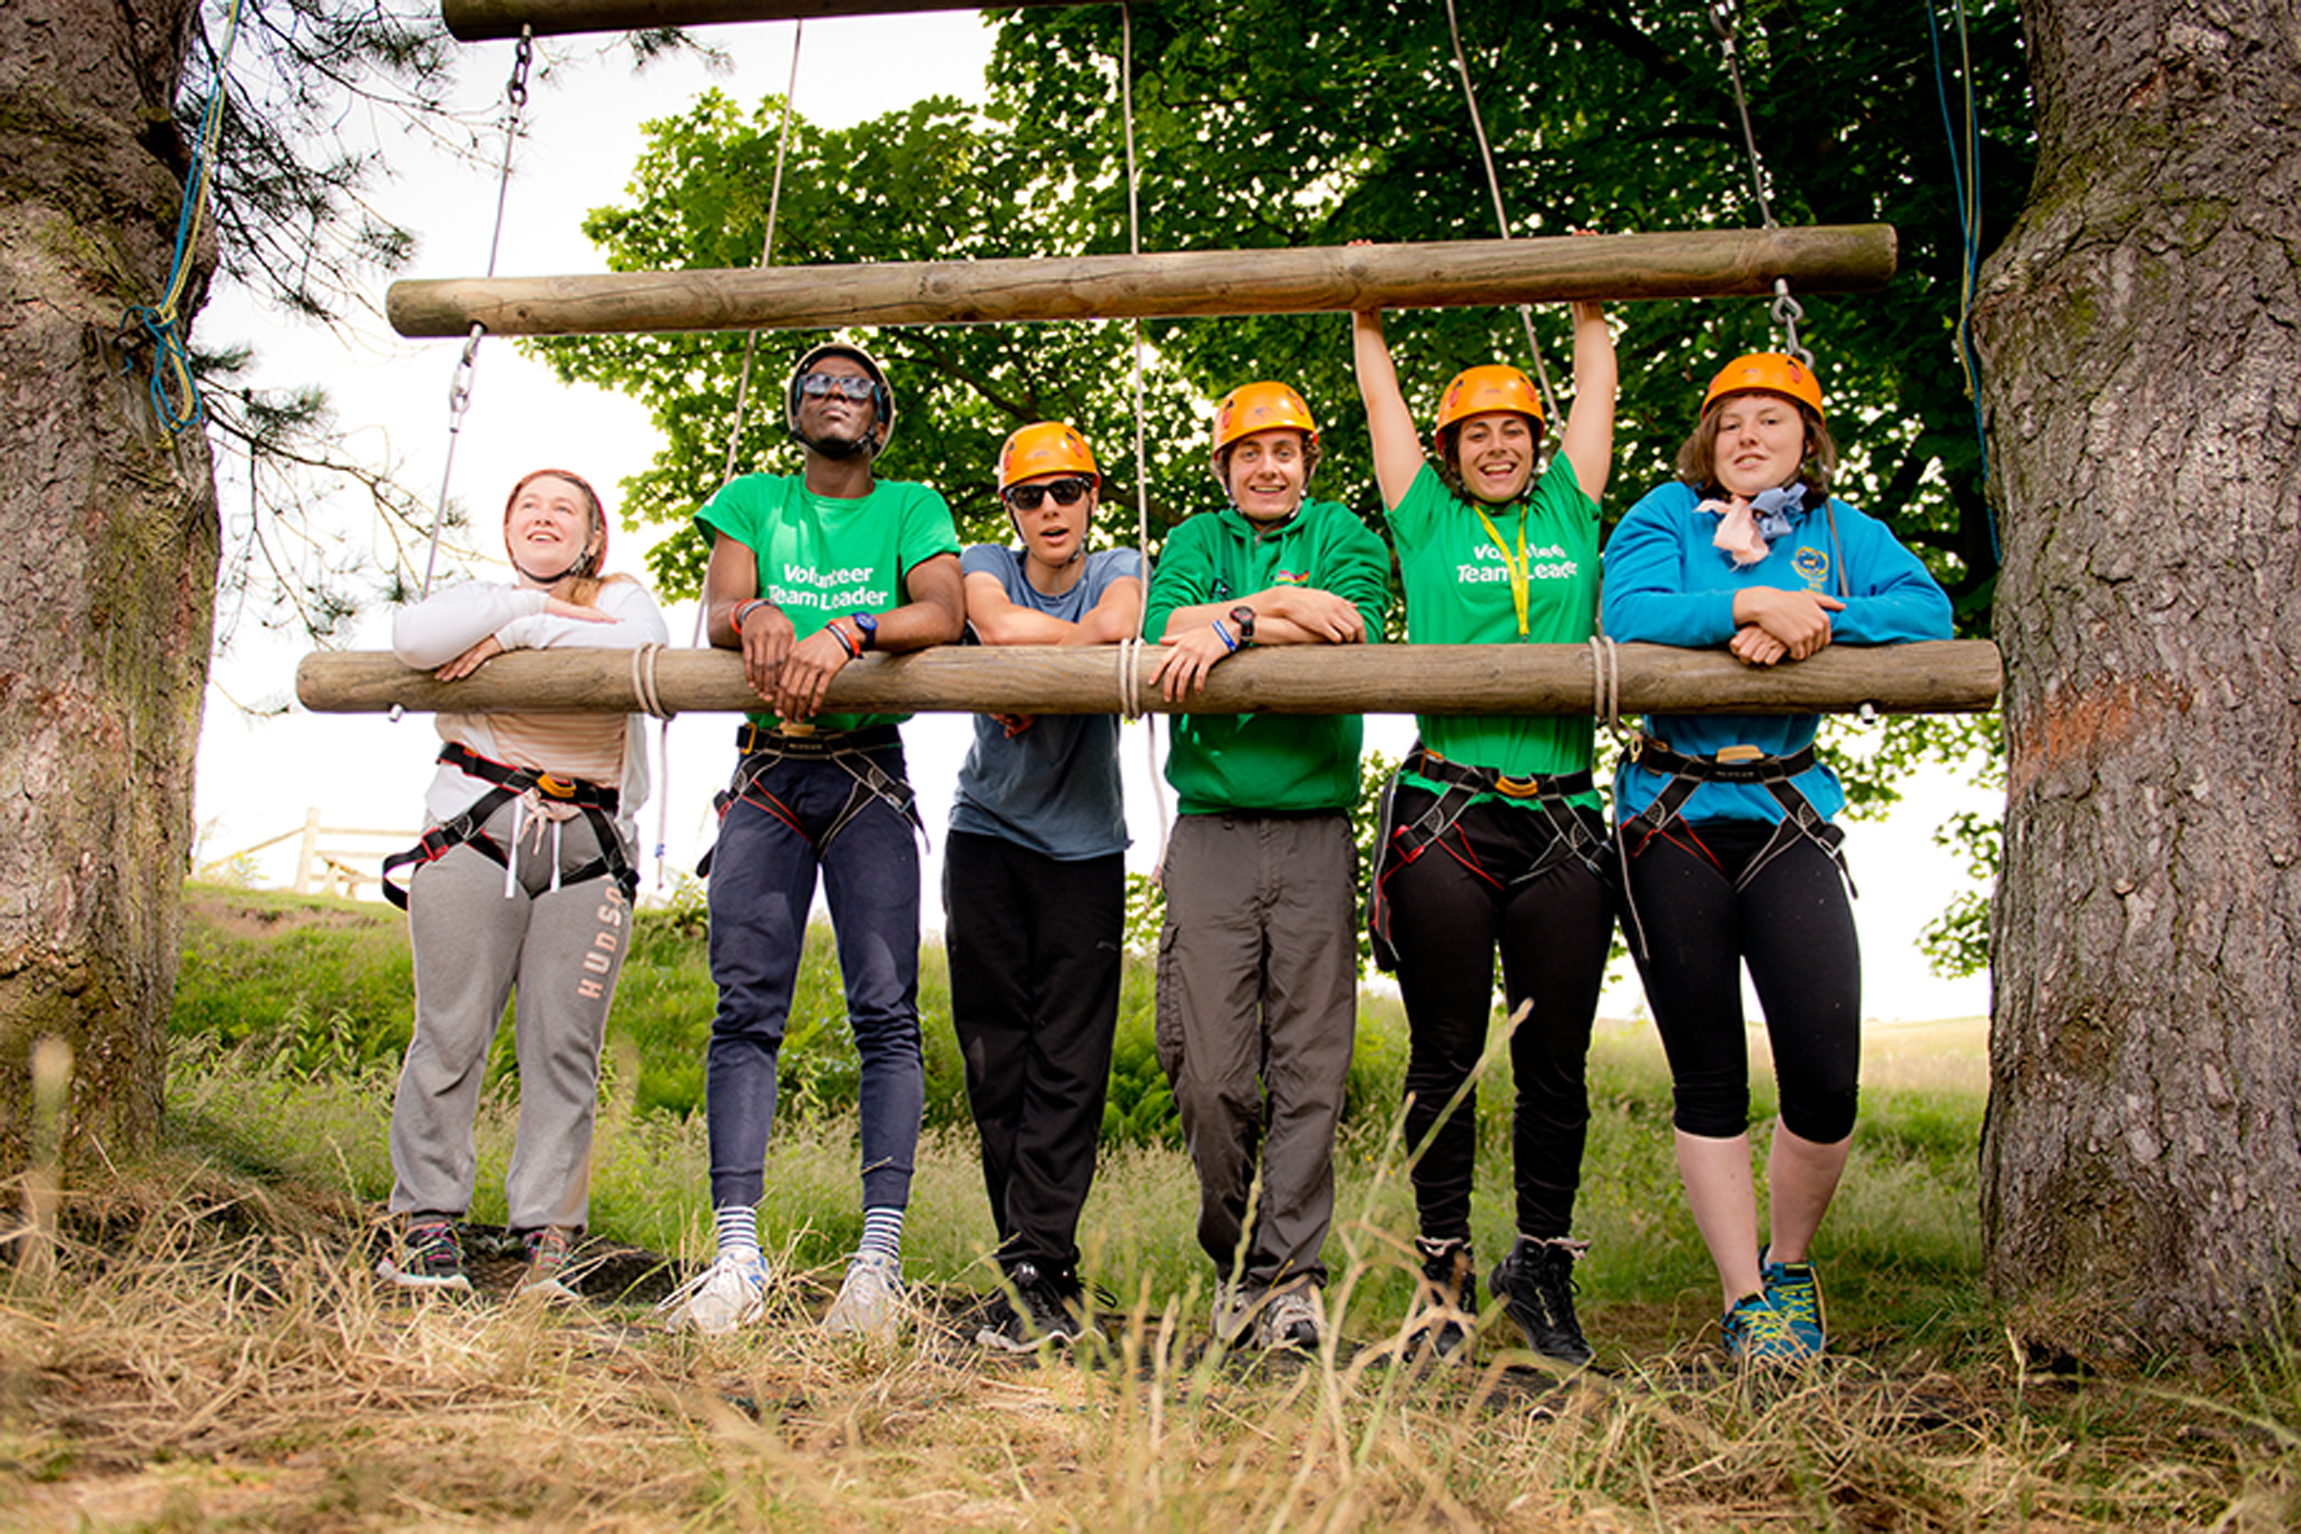 yha volunteering opportunities yha jobs volunteering summer camp volunteers